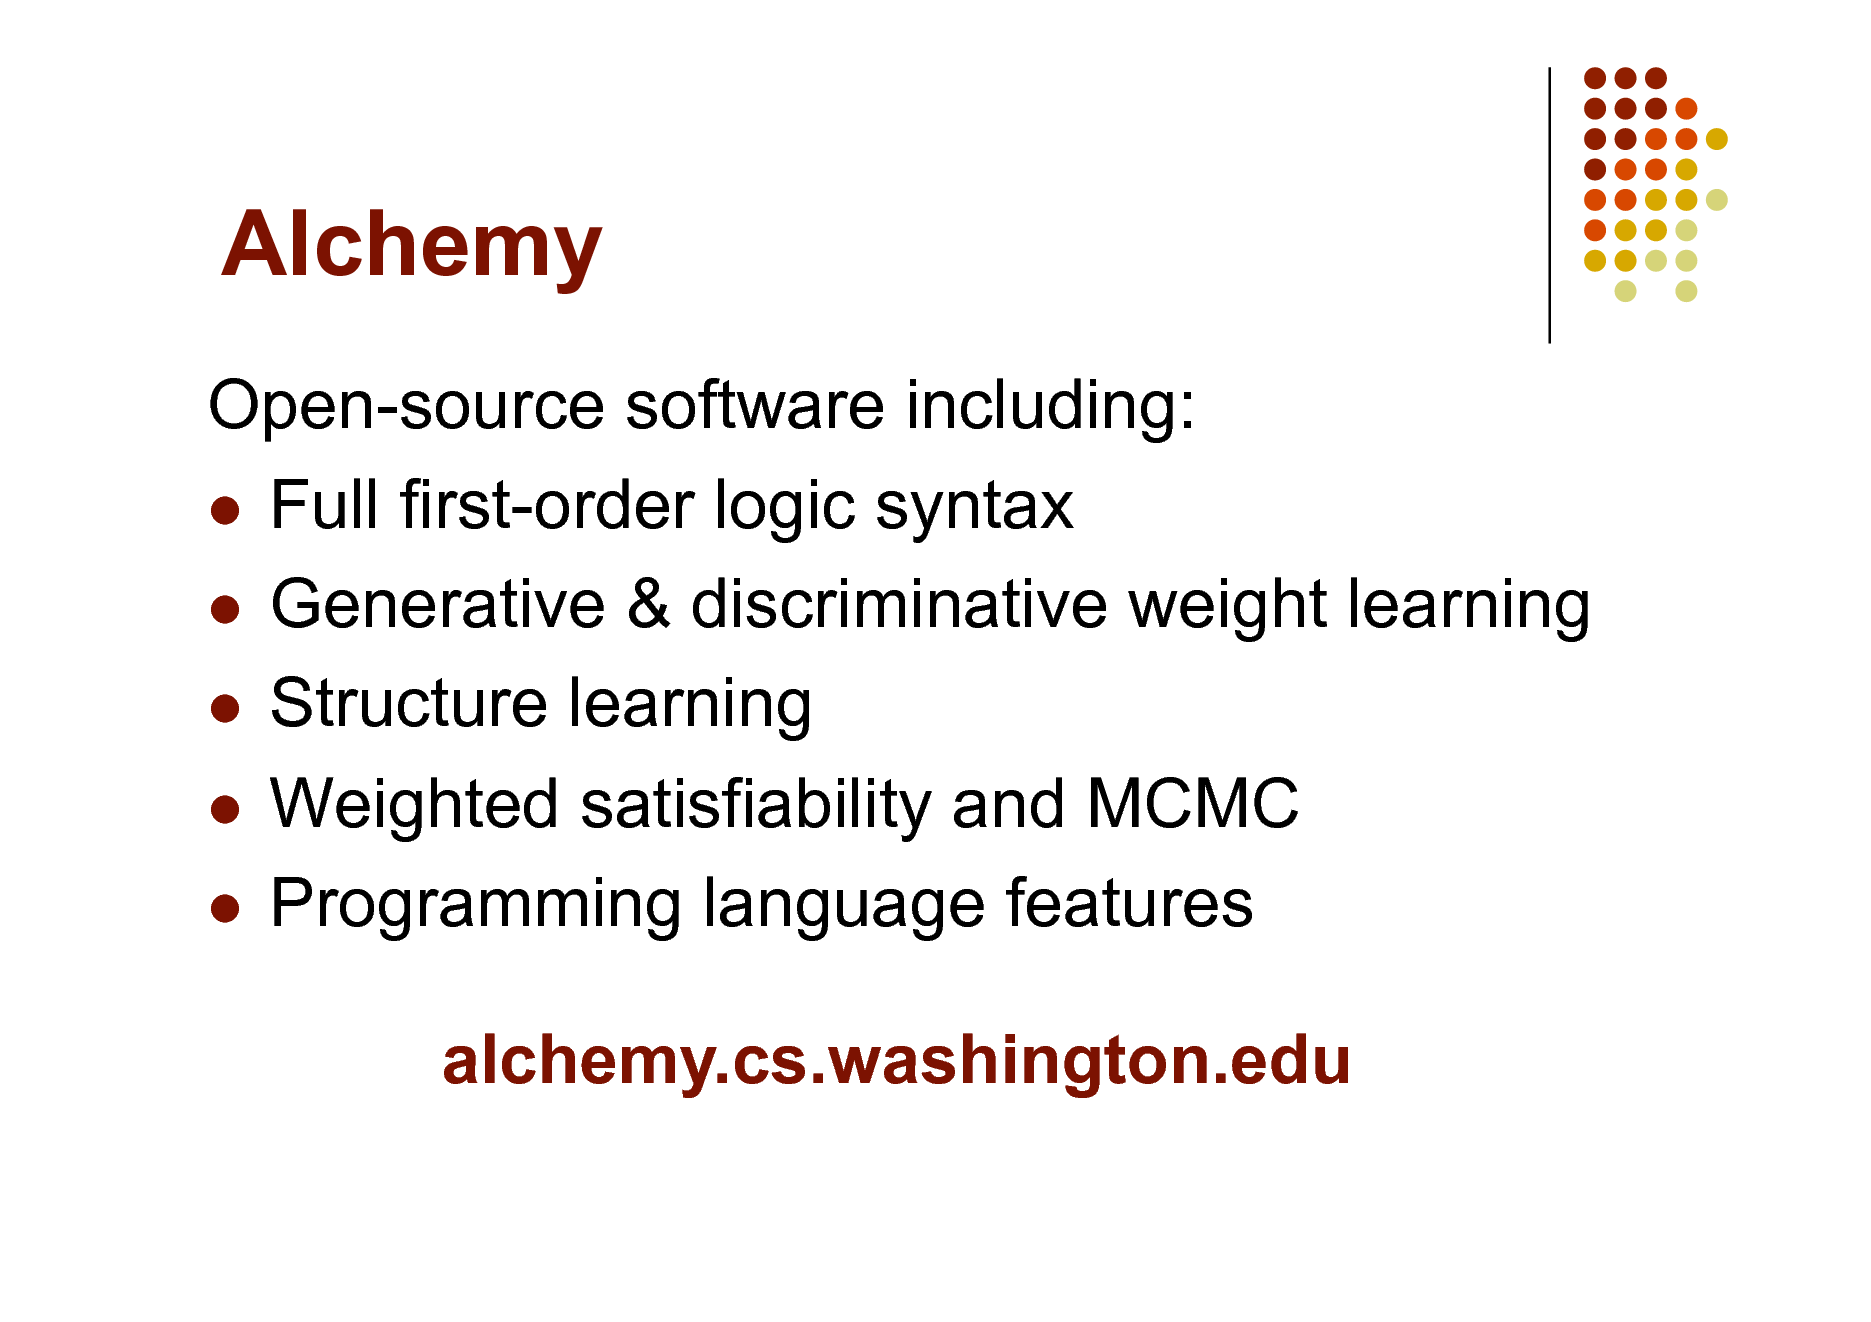 Slide: Alchemy Open-source software including:  Full first-order logic syntax  Generative & discriminative weight learning  Structure learning  Weighted satisfiability and MCMC  Programming language features alchemy.cs.washington.edu